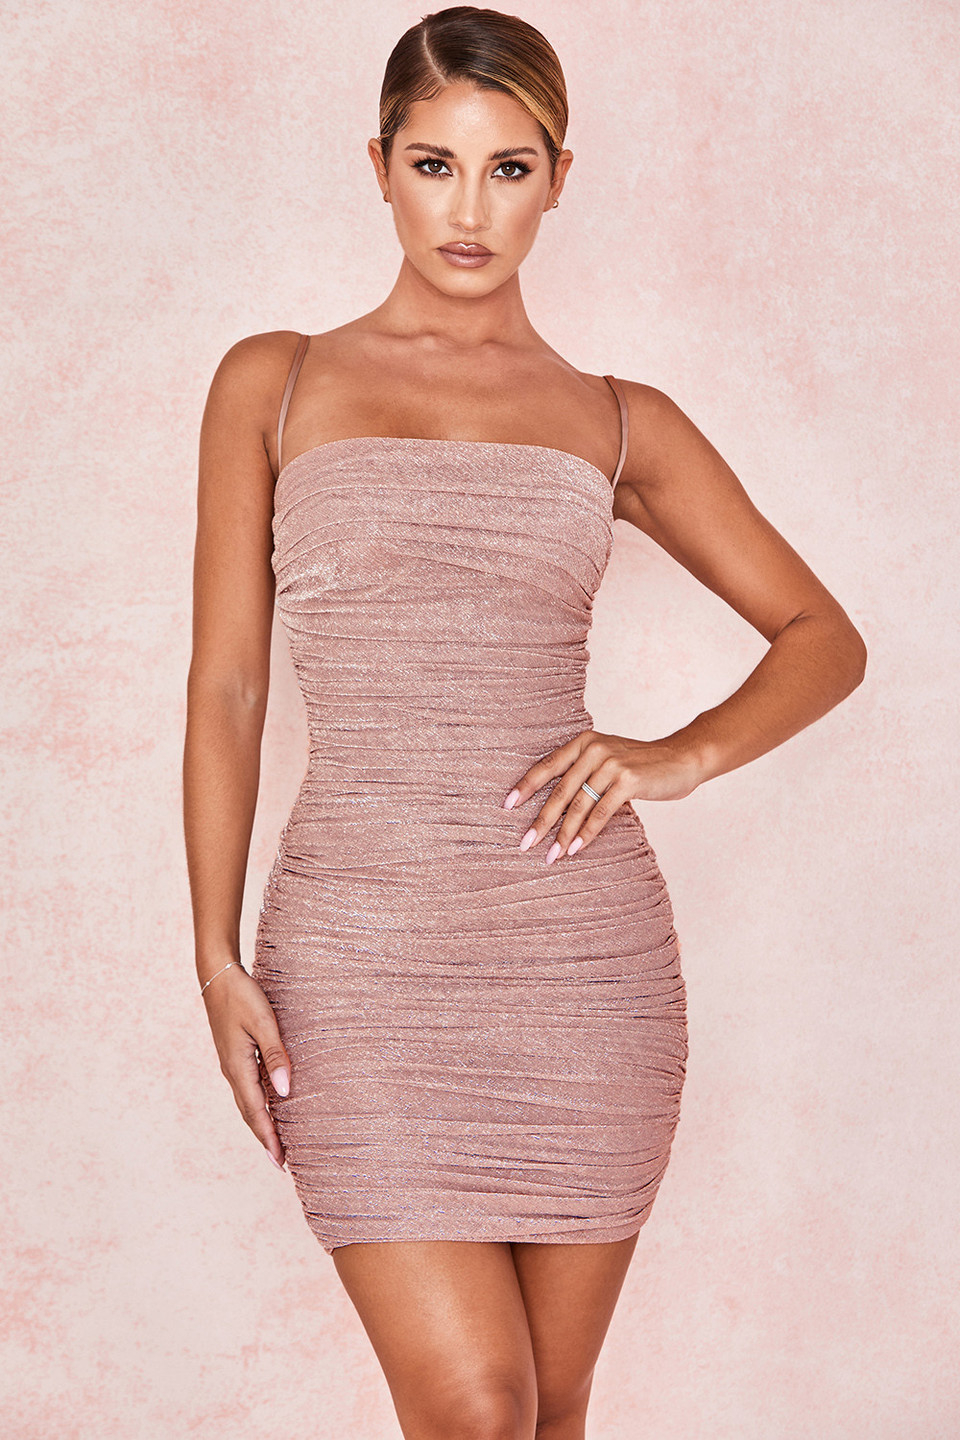 Ella Pale Pink Sparkle Mesh Mini Dress